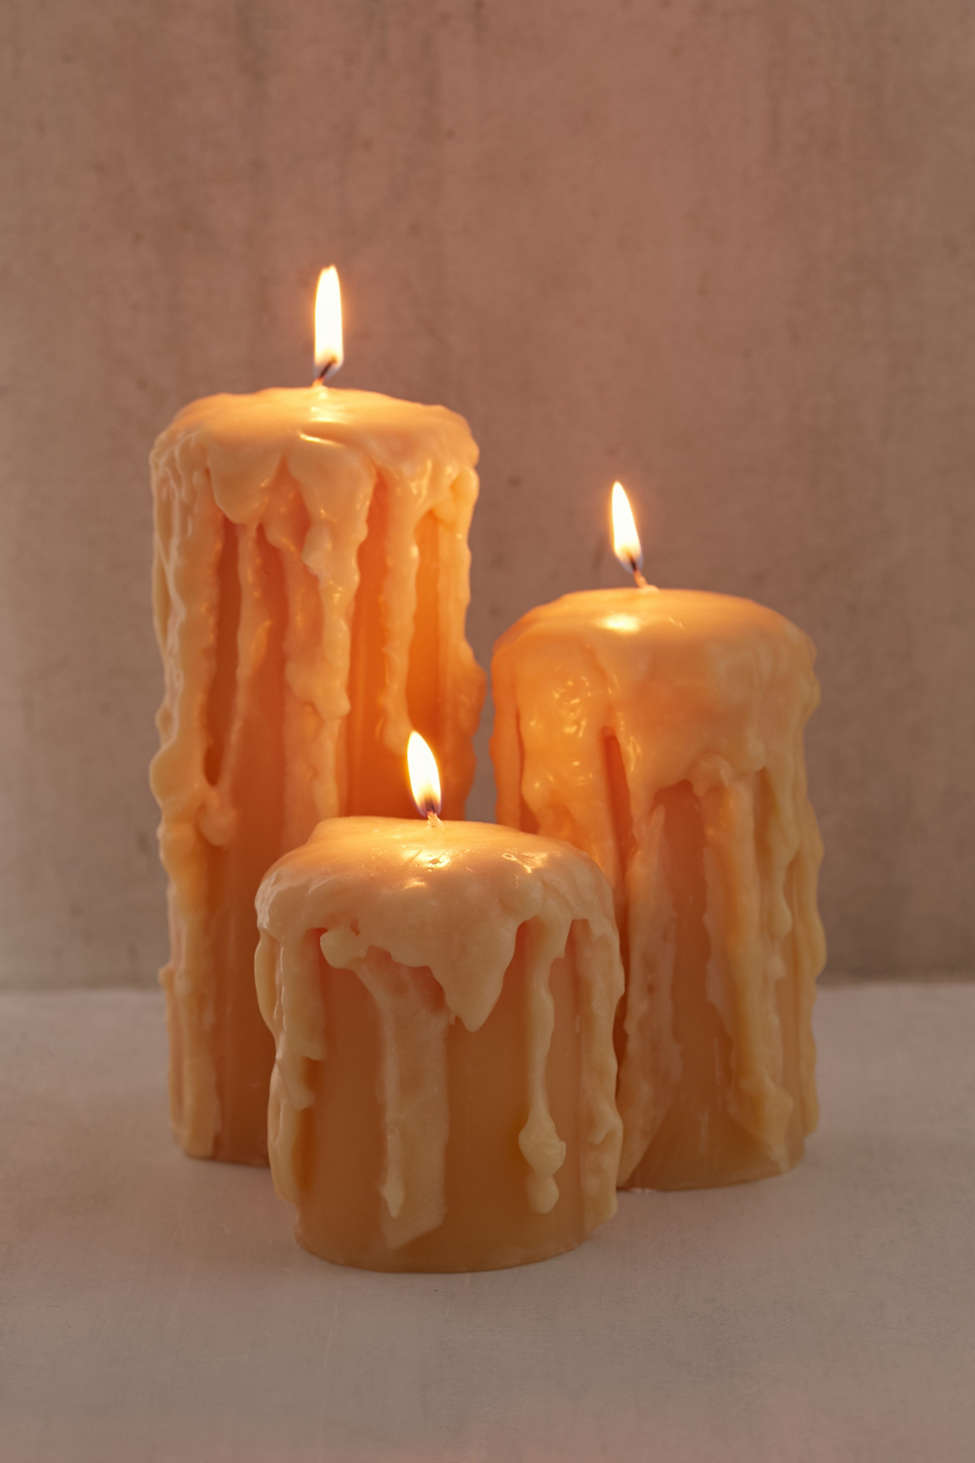 Slide View: 3: Melted Pillar Candle